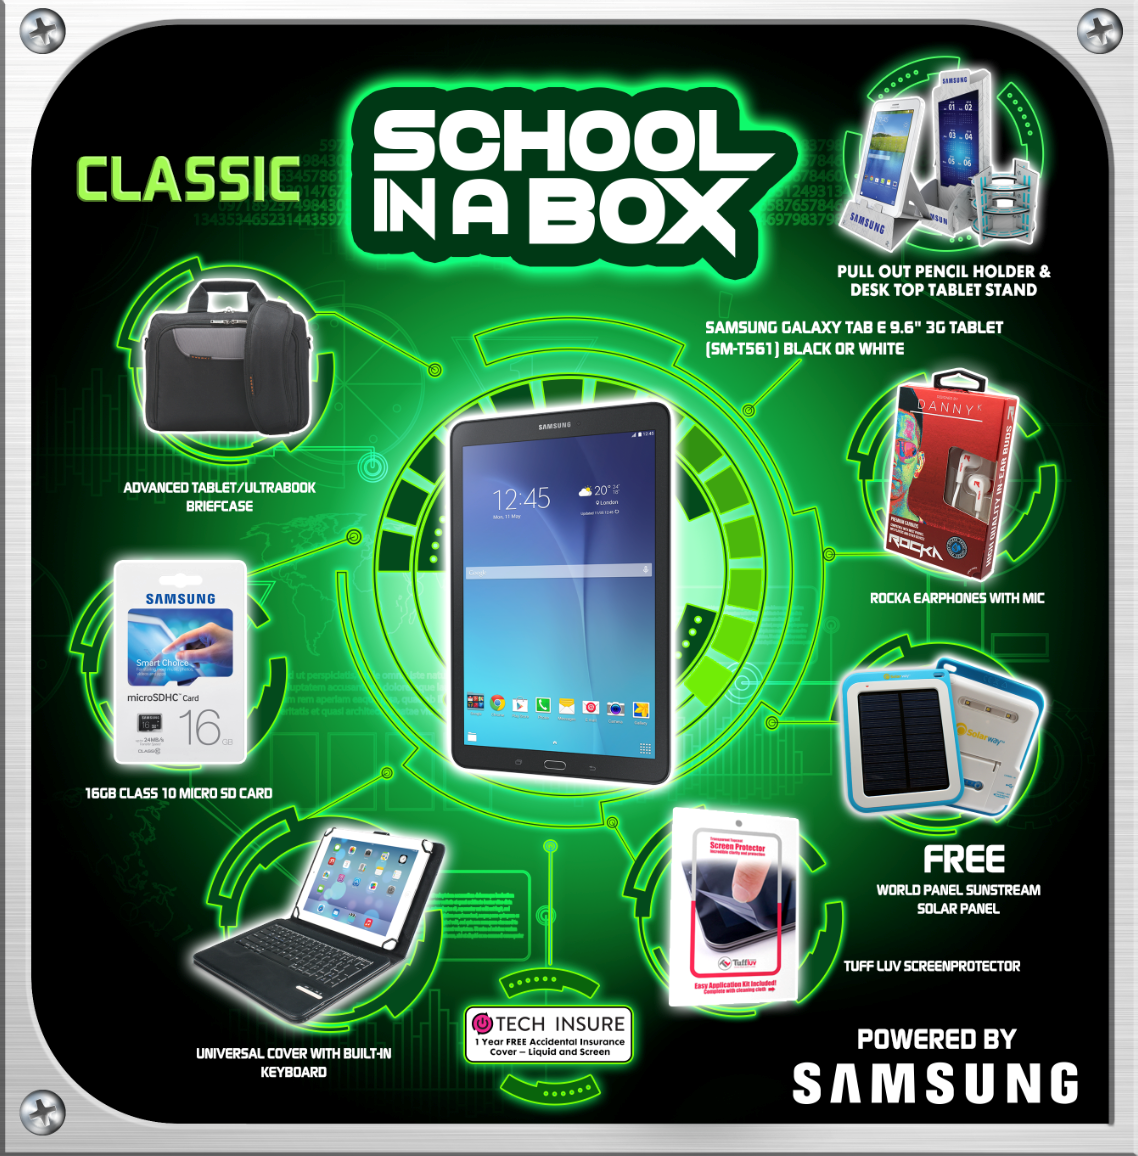 School in box 2